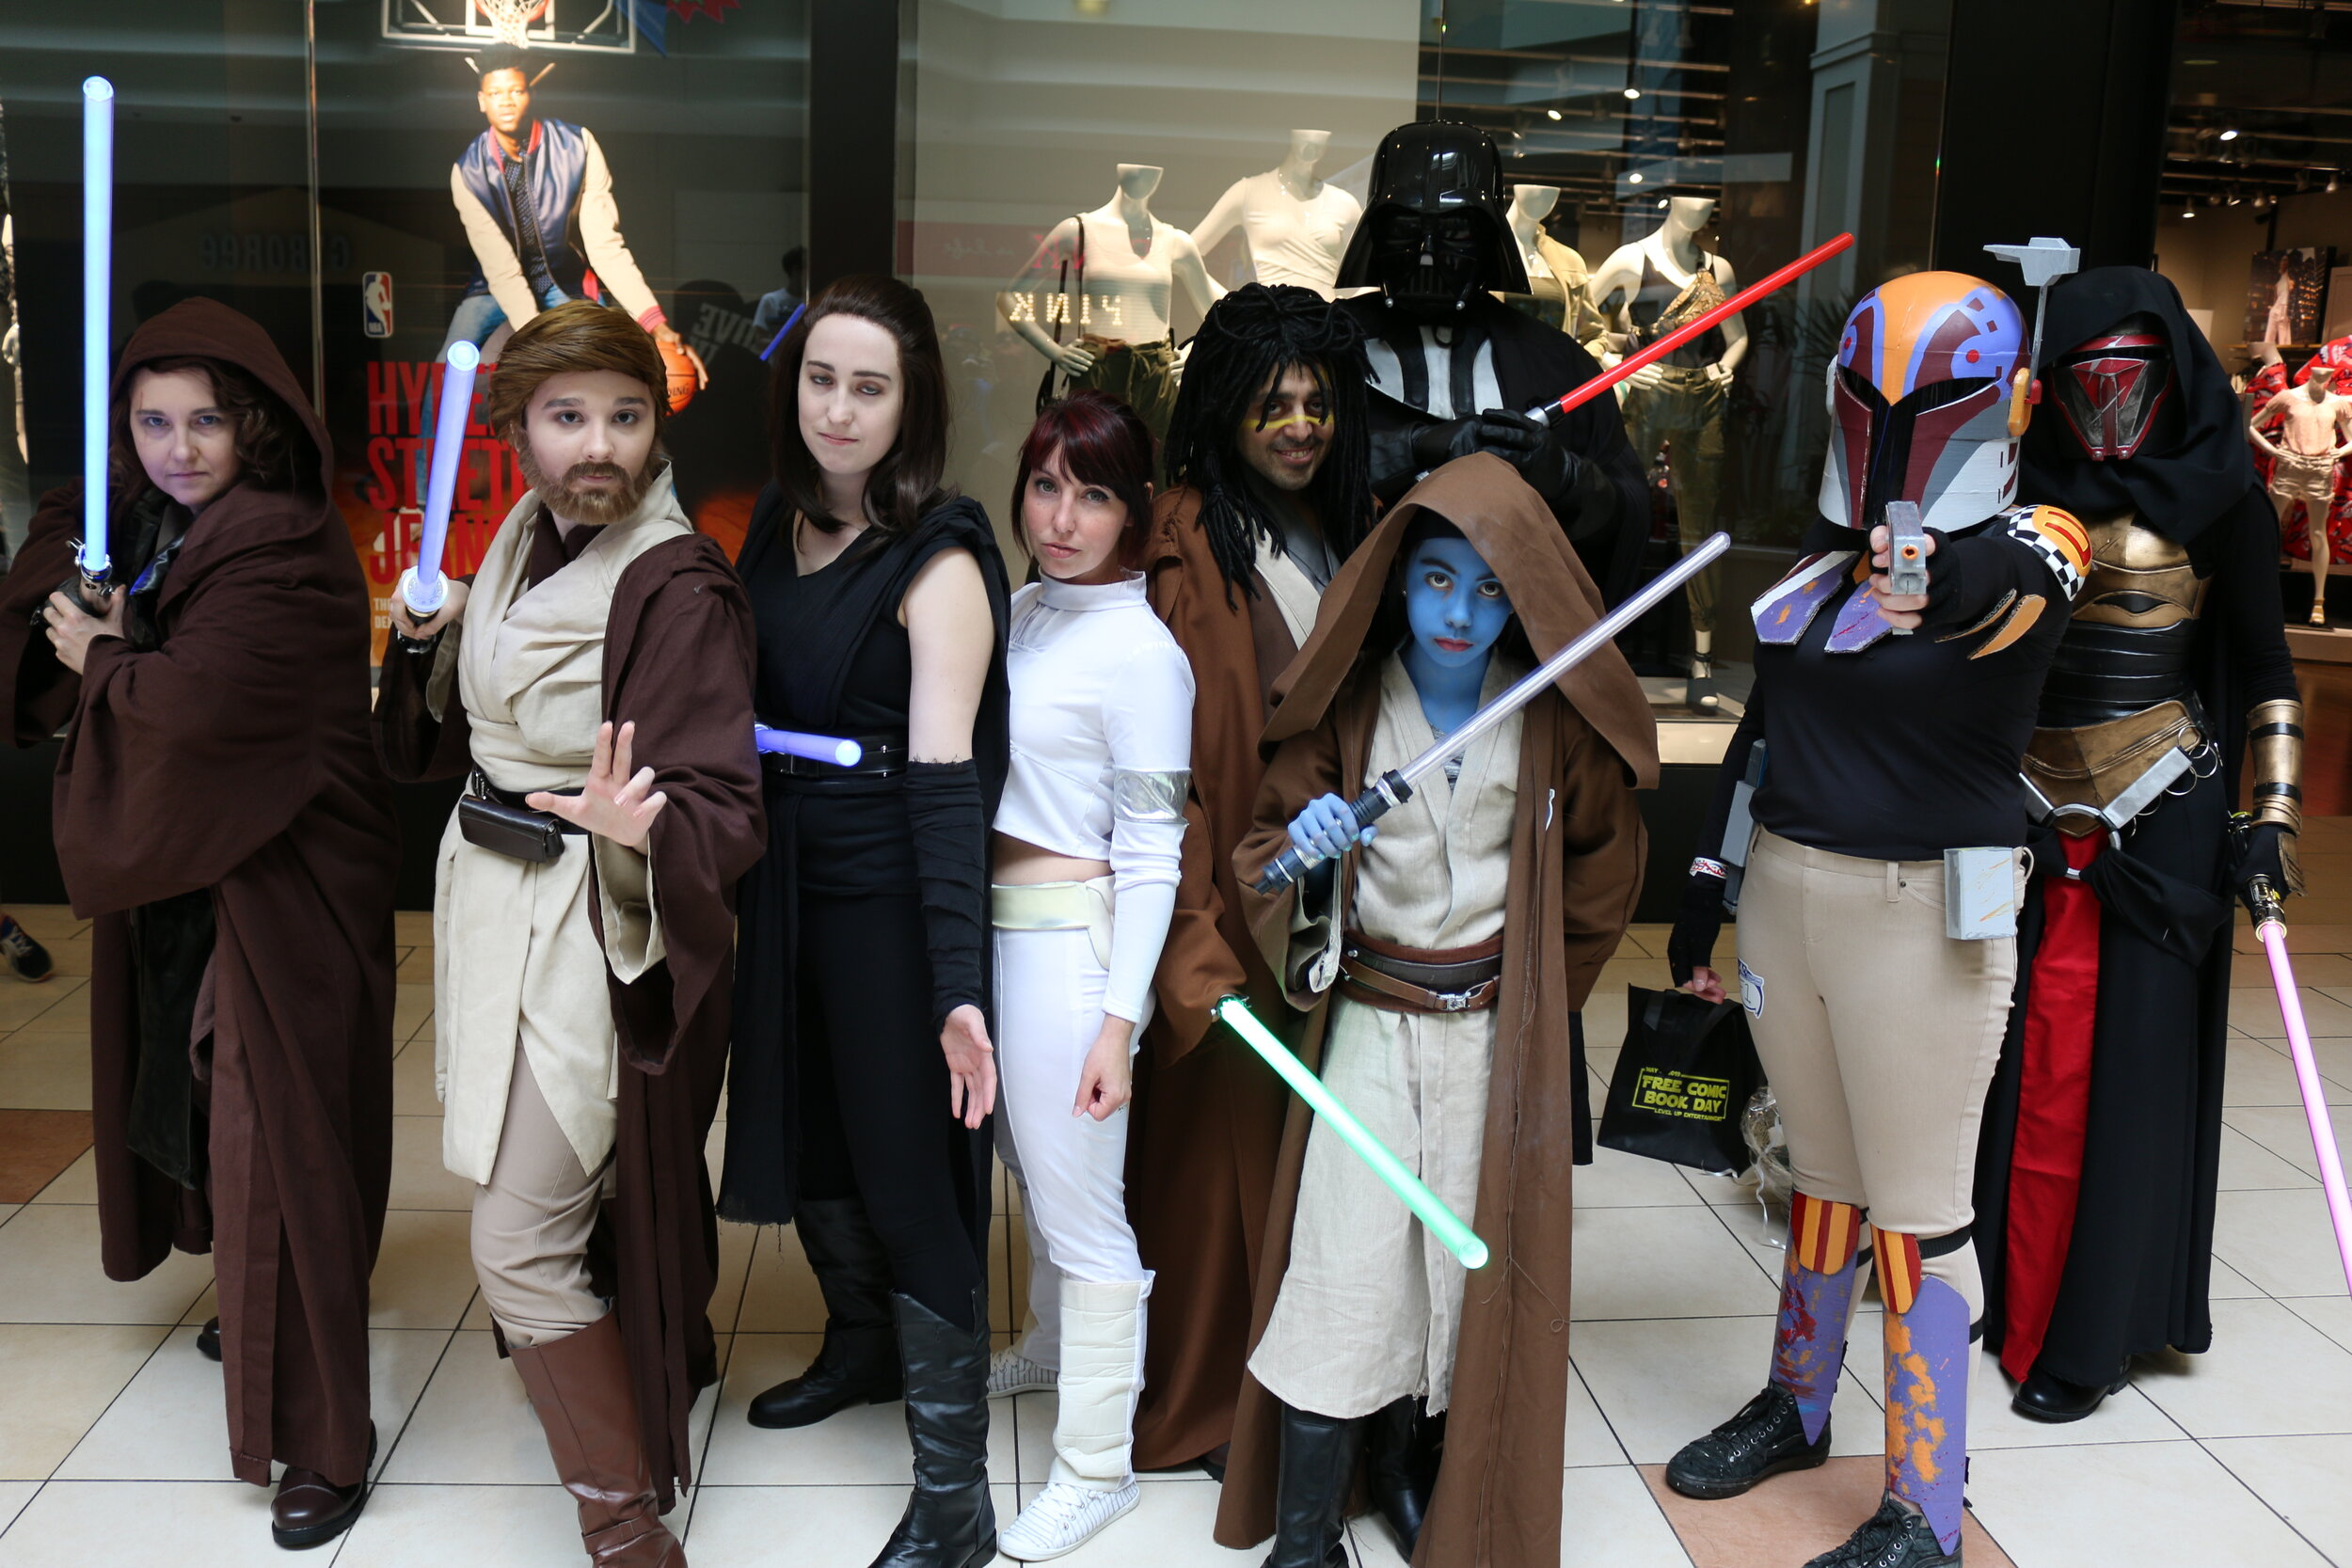 Emily, RStewie, Moaglin, Sam Starr and more as Star Wars Character at Free Comic Book Day on May the 4th 2019.